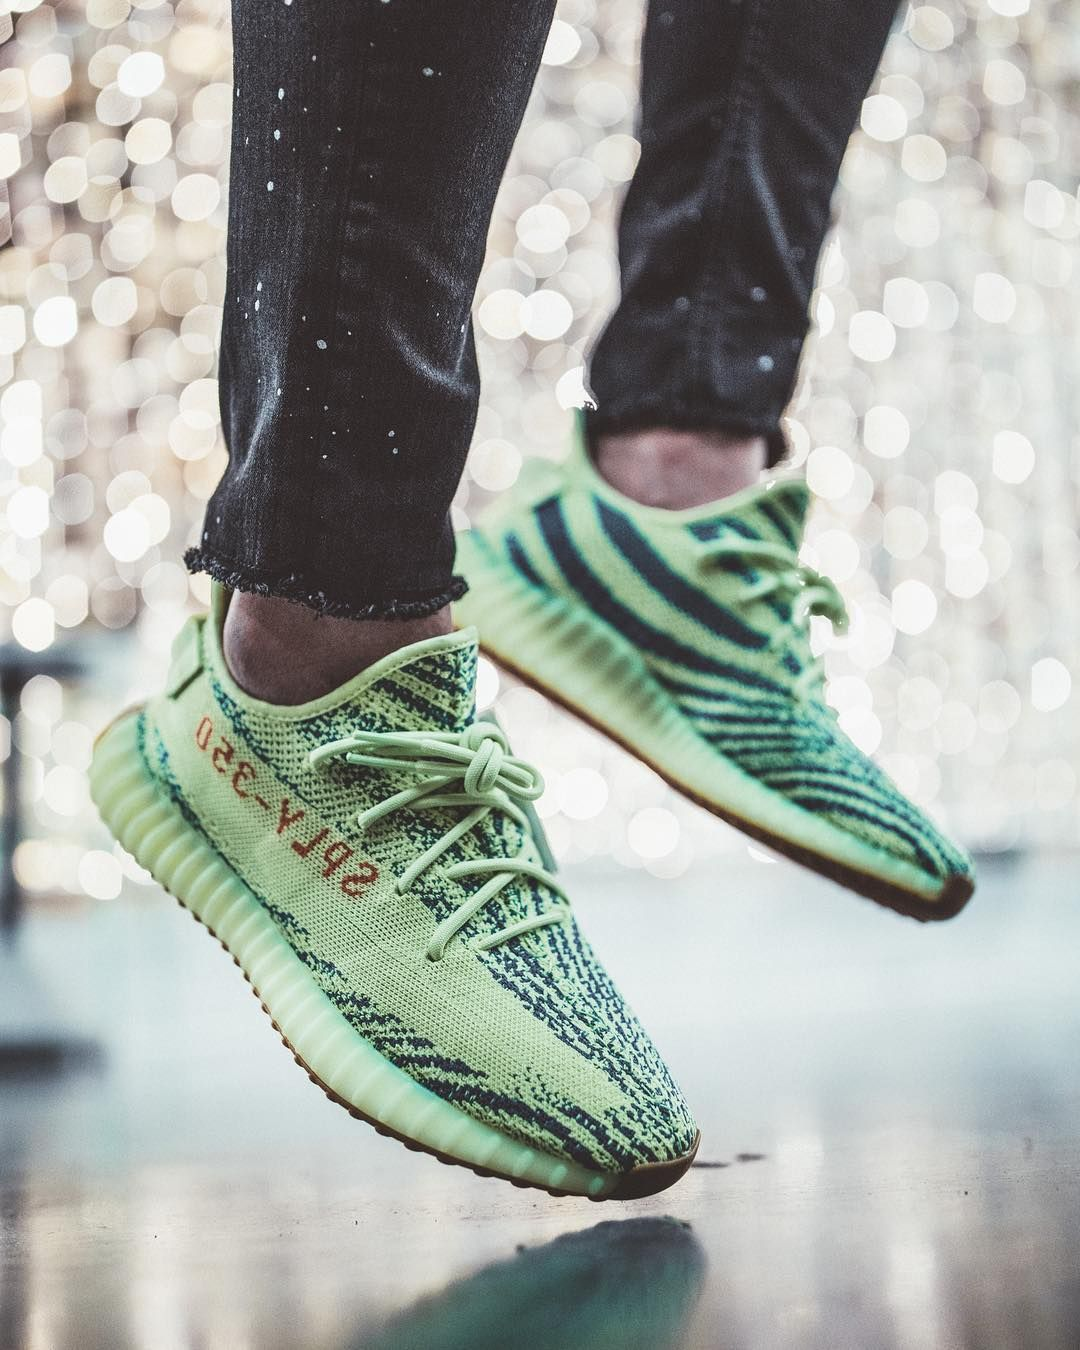 online retailer 3e2b7 afcfa Semi Frozen Yellow YEEZY 350 V2 | YEEZY by Kanye West in ...